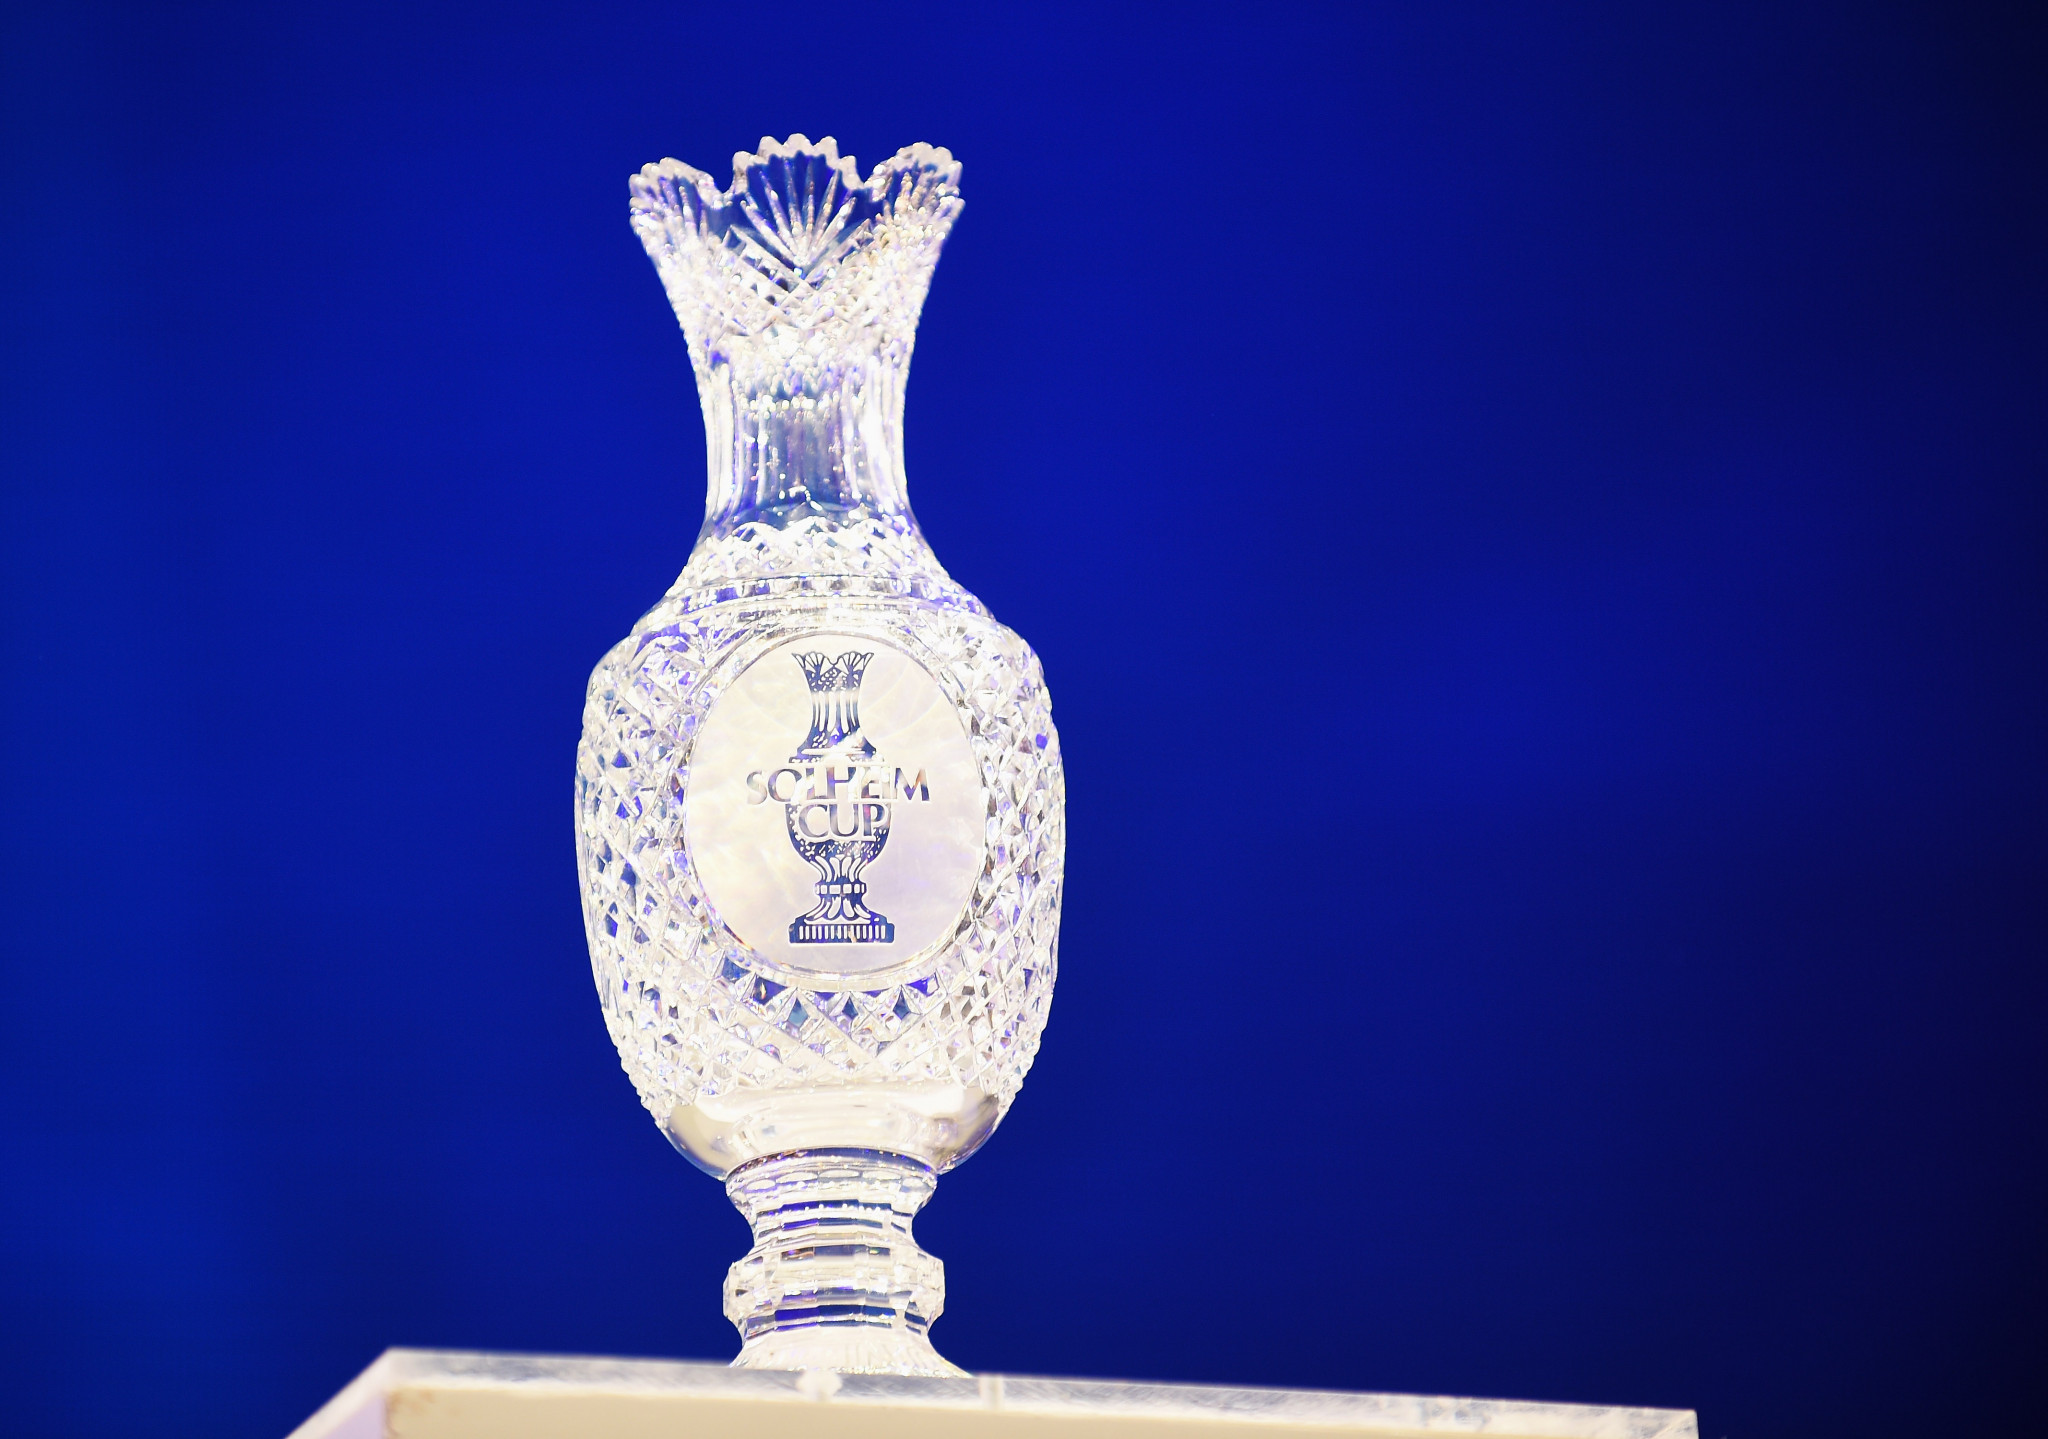 Solheim Cup moved to even years from 2024 to avoid Ryder Cup clashes